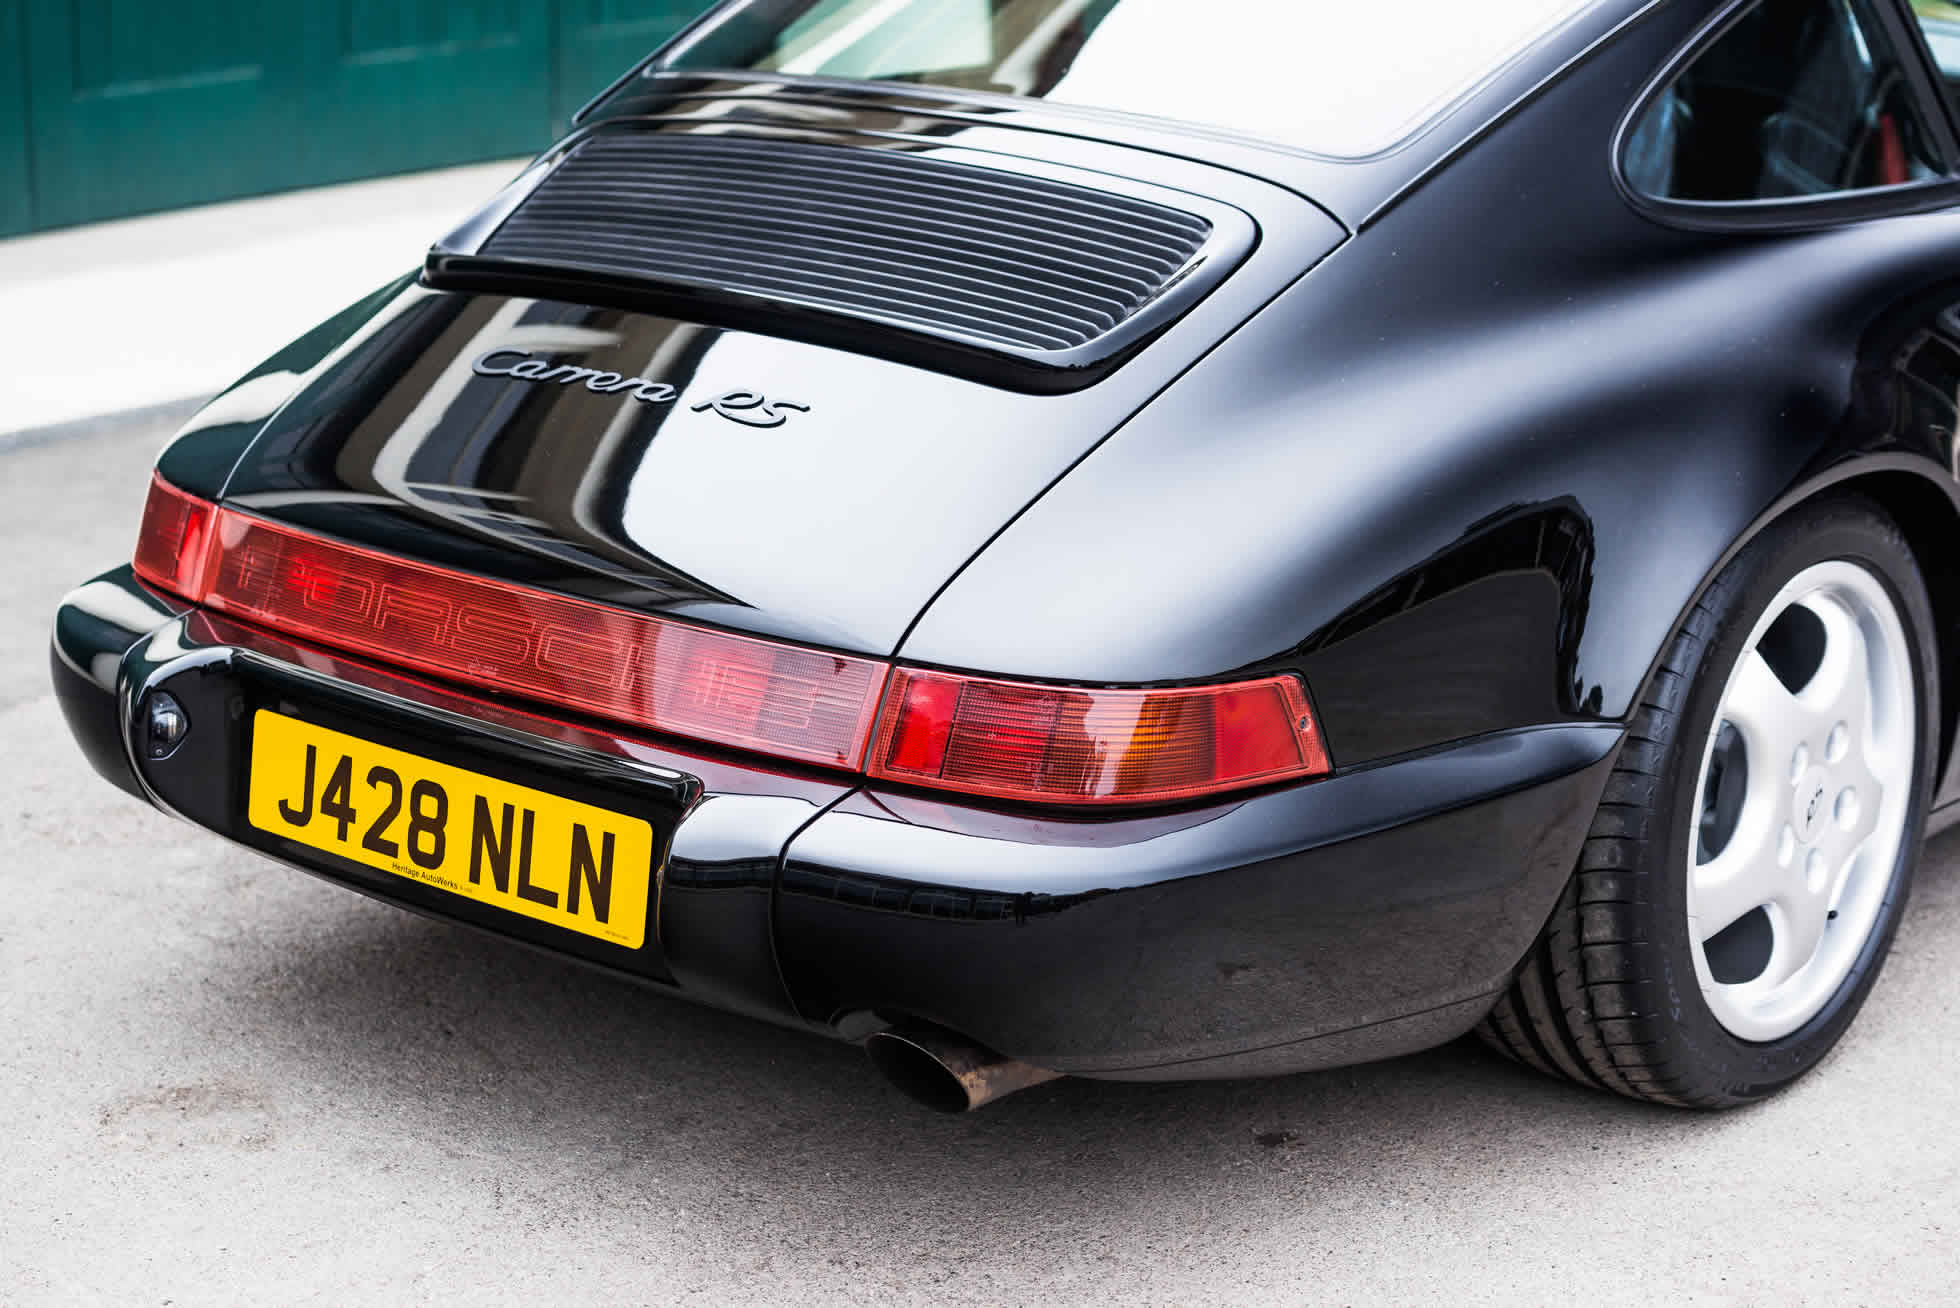 For Sale 1992 Porsche 964 RS Lightweight rear view